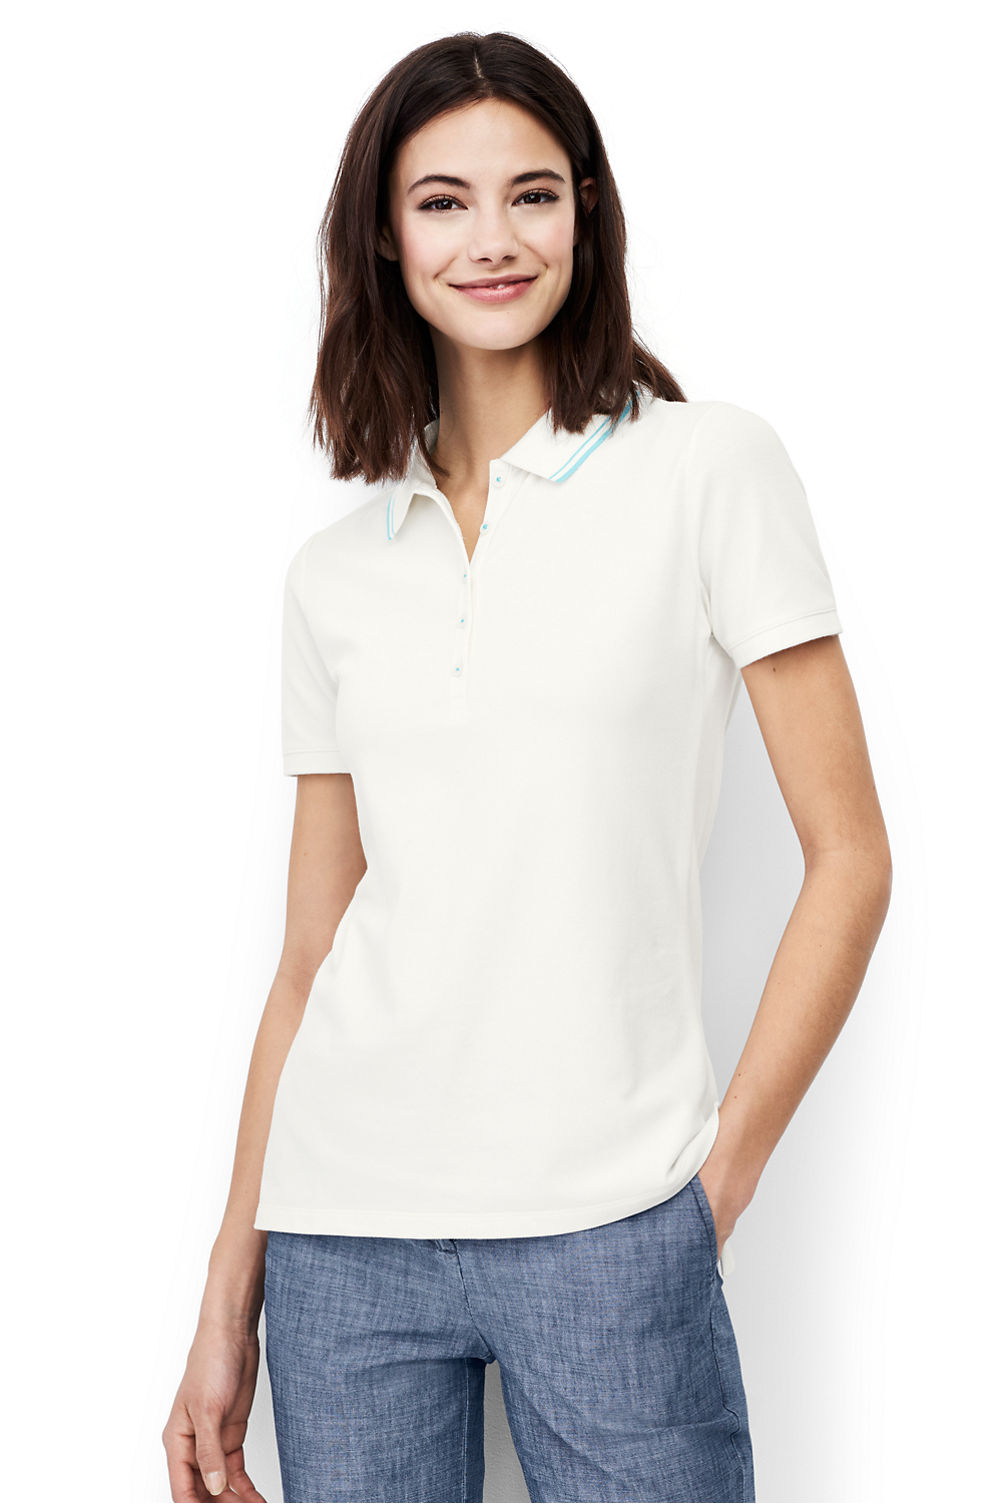 women s short sleeve mesh polo shirt from lands end